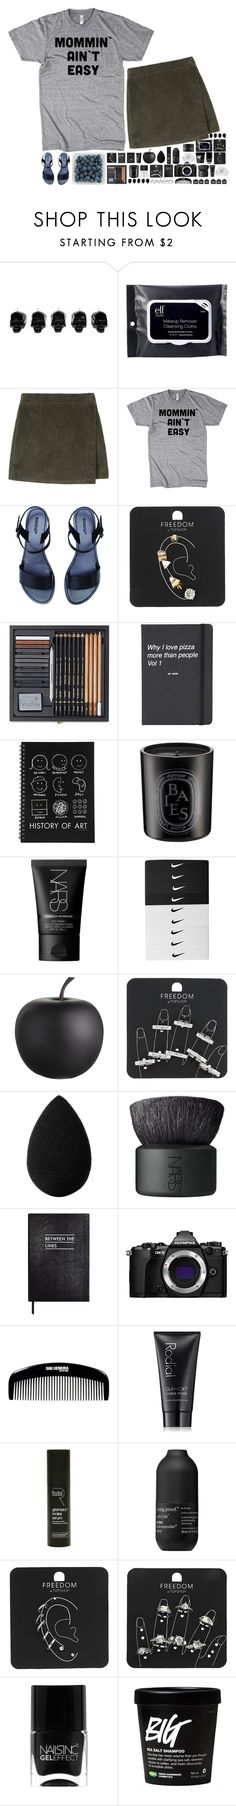 """""""Why does it feel like night today? Something in here's not right today."""" by spottdrossel ❤ liked on Polyvore featuring D.L. & Co., e.l.f., Topshop, Diptyque, NARS Cosmetics, NIKE, CB2, beautyblender, Sloane Stationery and Olympus"""